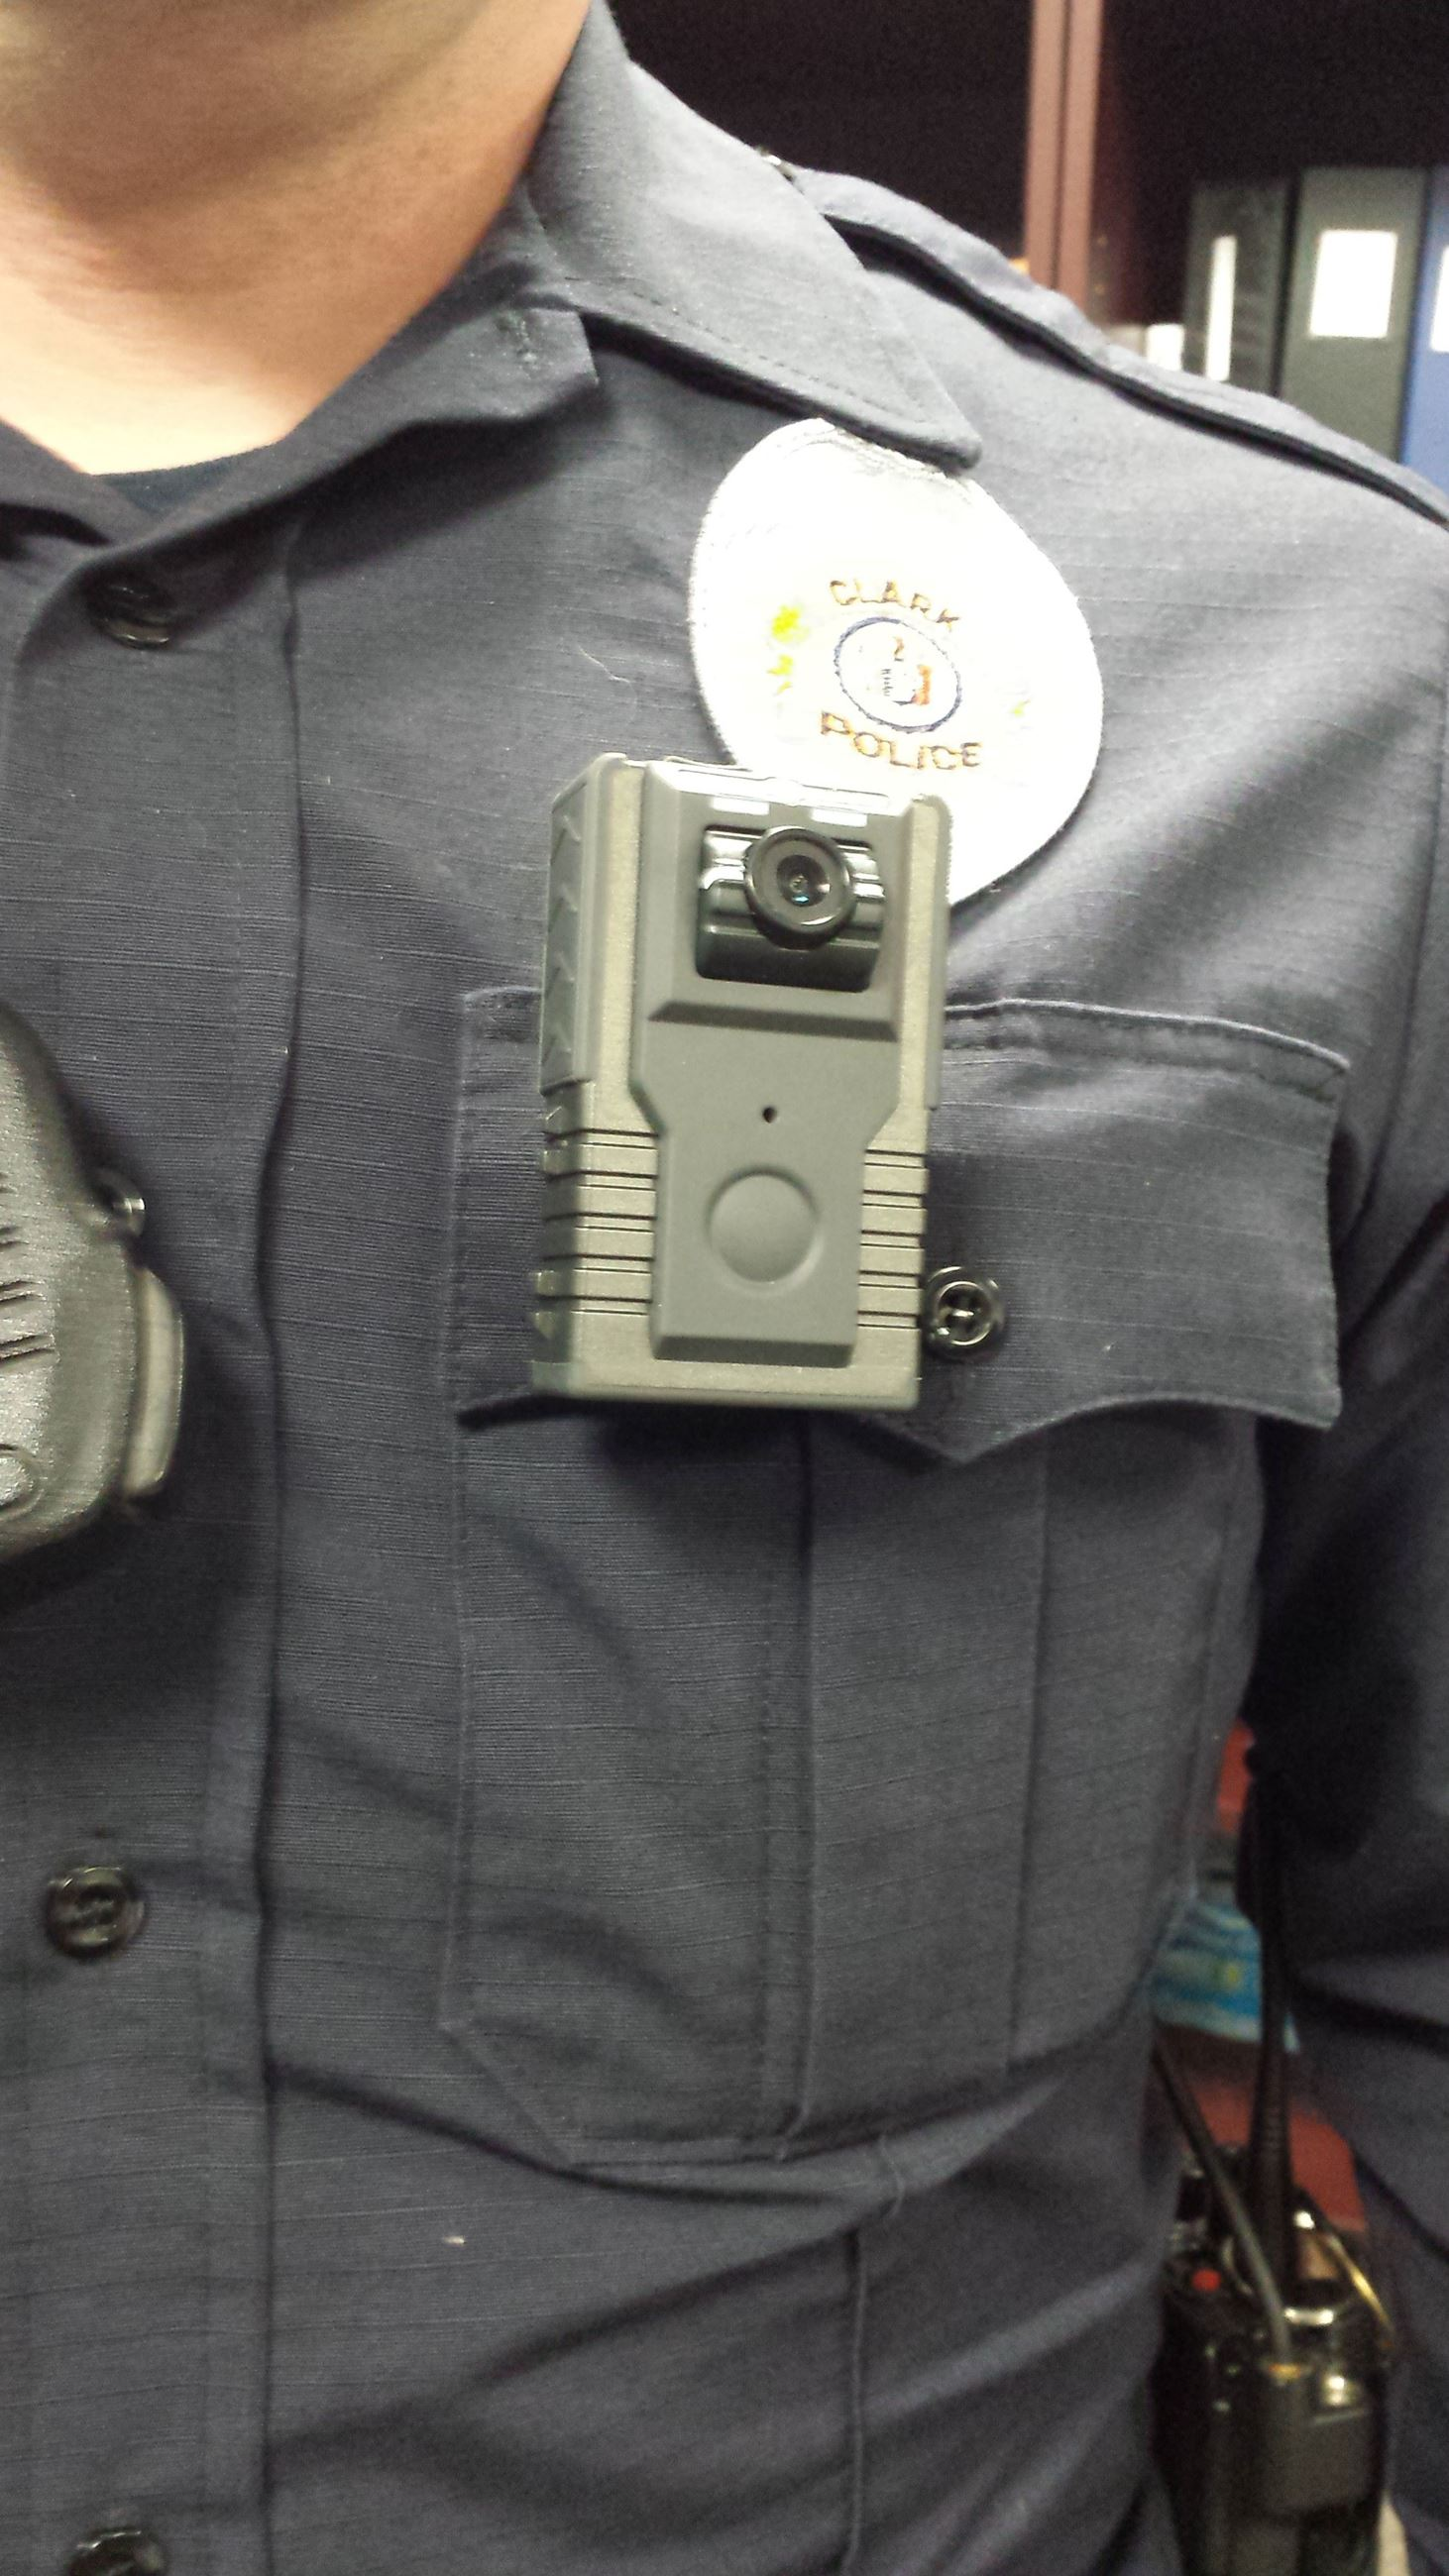 Body Camera on Police Officer (JPEG)